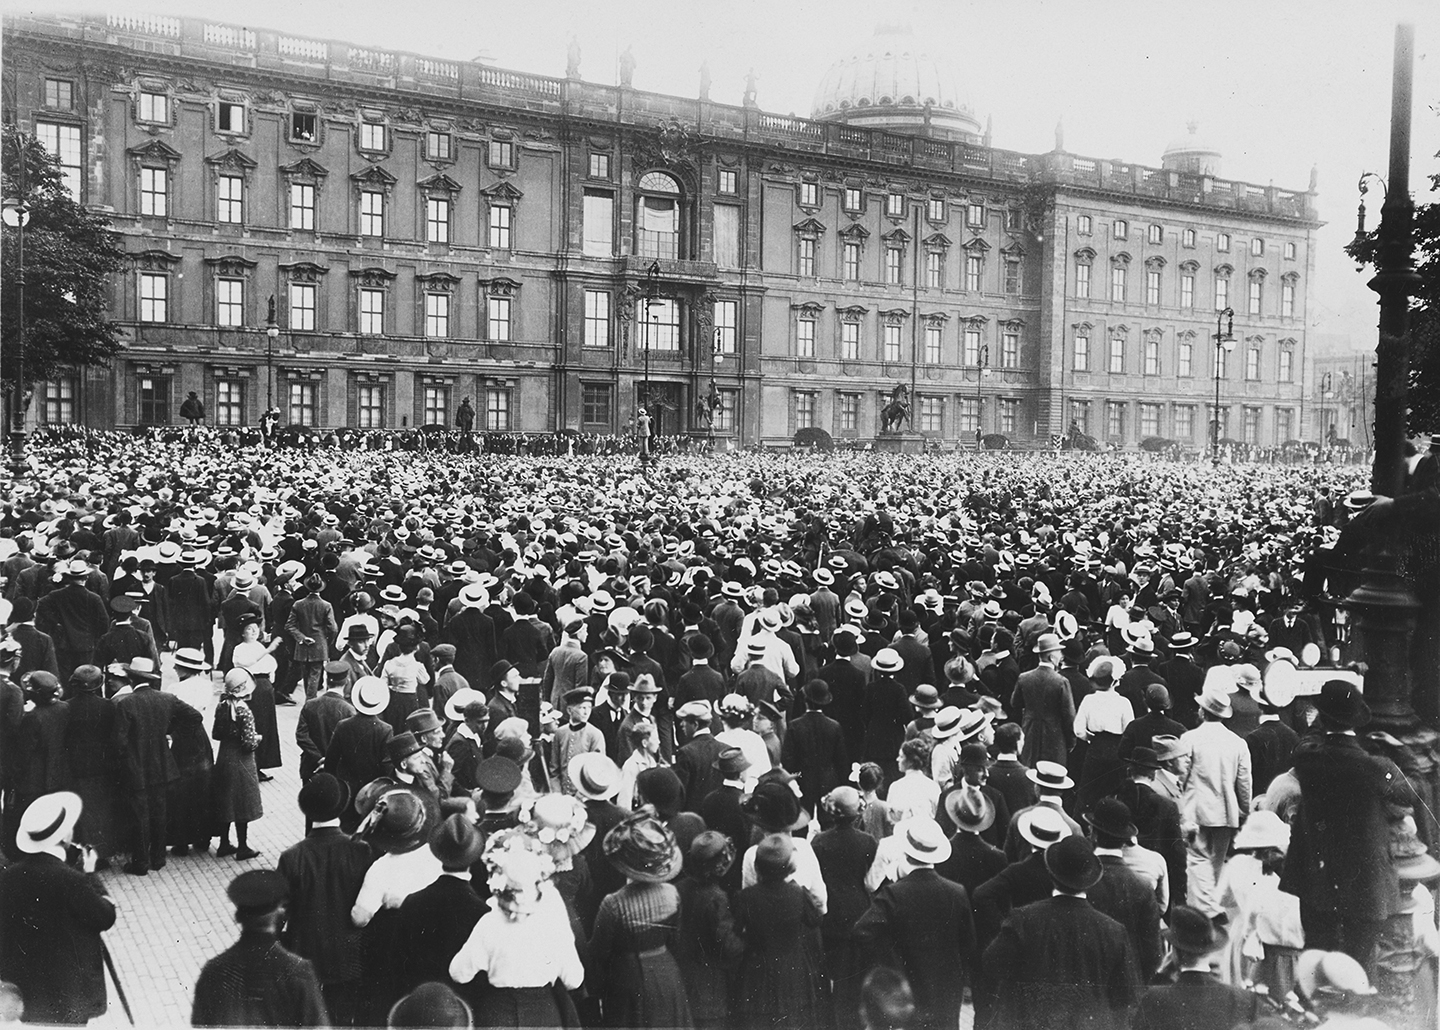 Click image for larger version.  Name:1. 1 1 4 0 4 2 crowd waiting in front of the City Palace Berlin 1 August 1914.jpg Views:1 Size:991.8 KB ID:3646629